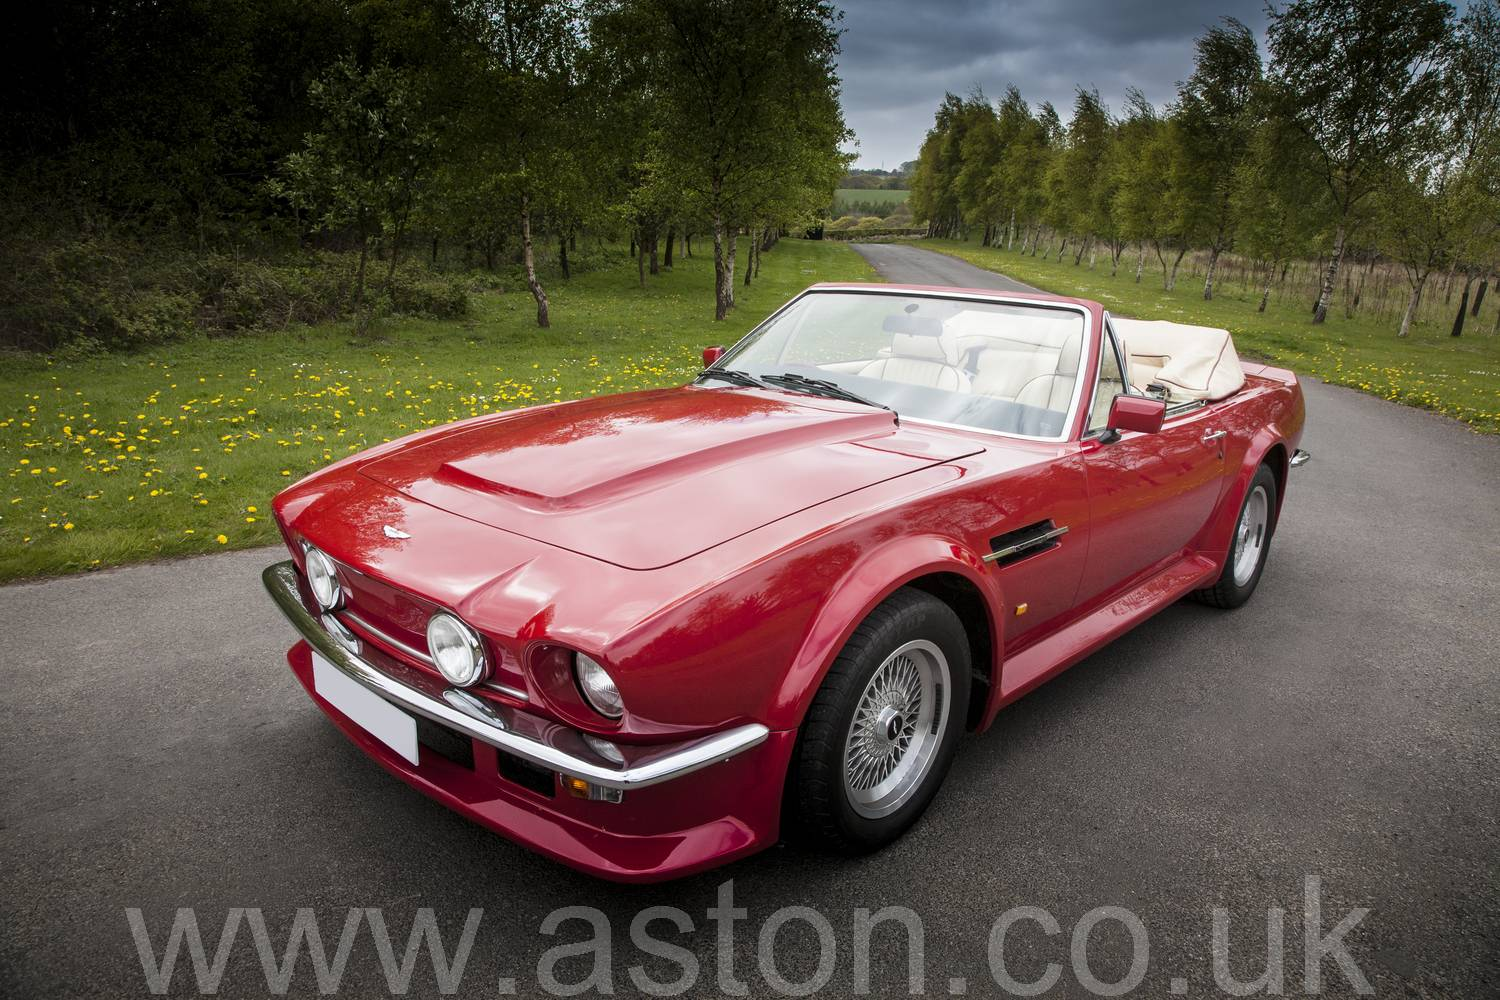 for sale aston martin v8 volante 1988 offered for gbp 399 950. Black Bedroom Furniture Sets. Home Design Ideas